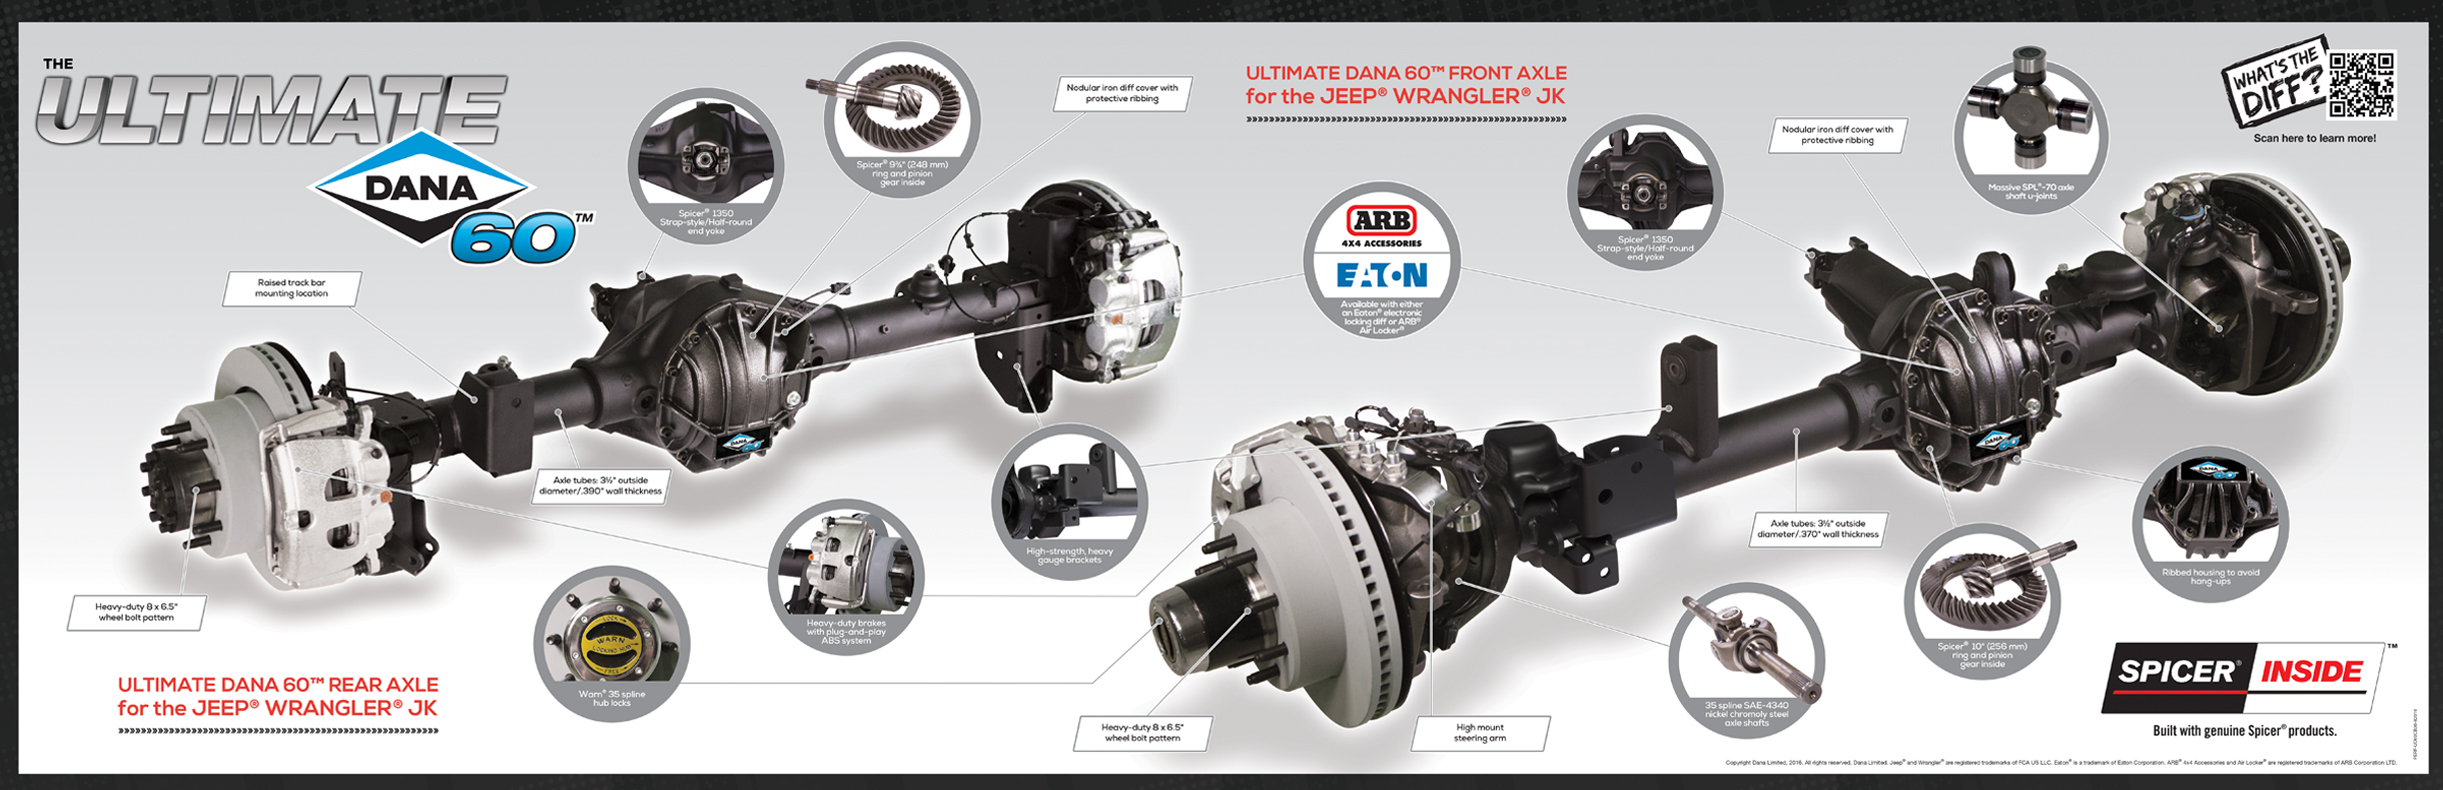 Jeep Front Axle And Housing Diagram Electrical Wiring End Ultimate Dana 60 U2122 For The U00ae Wrangler Jk Parts